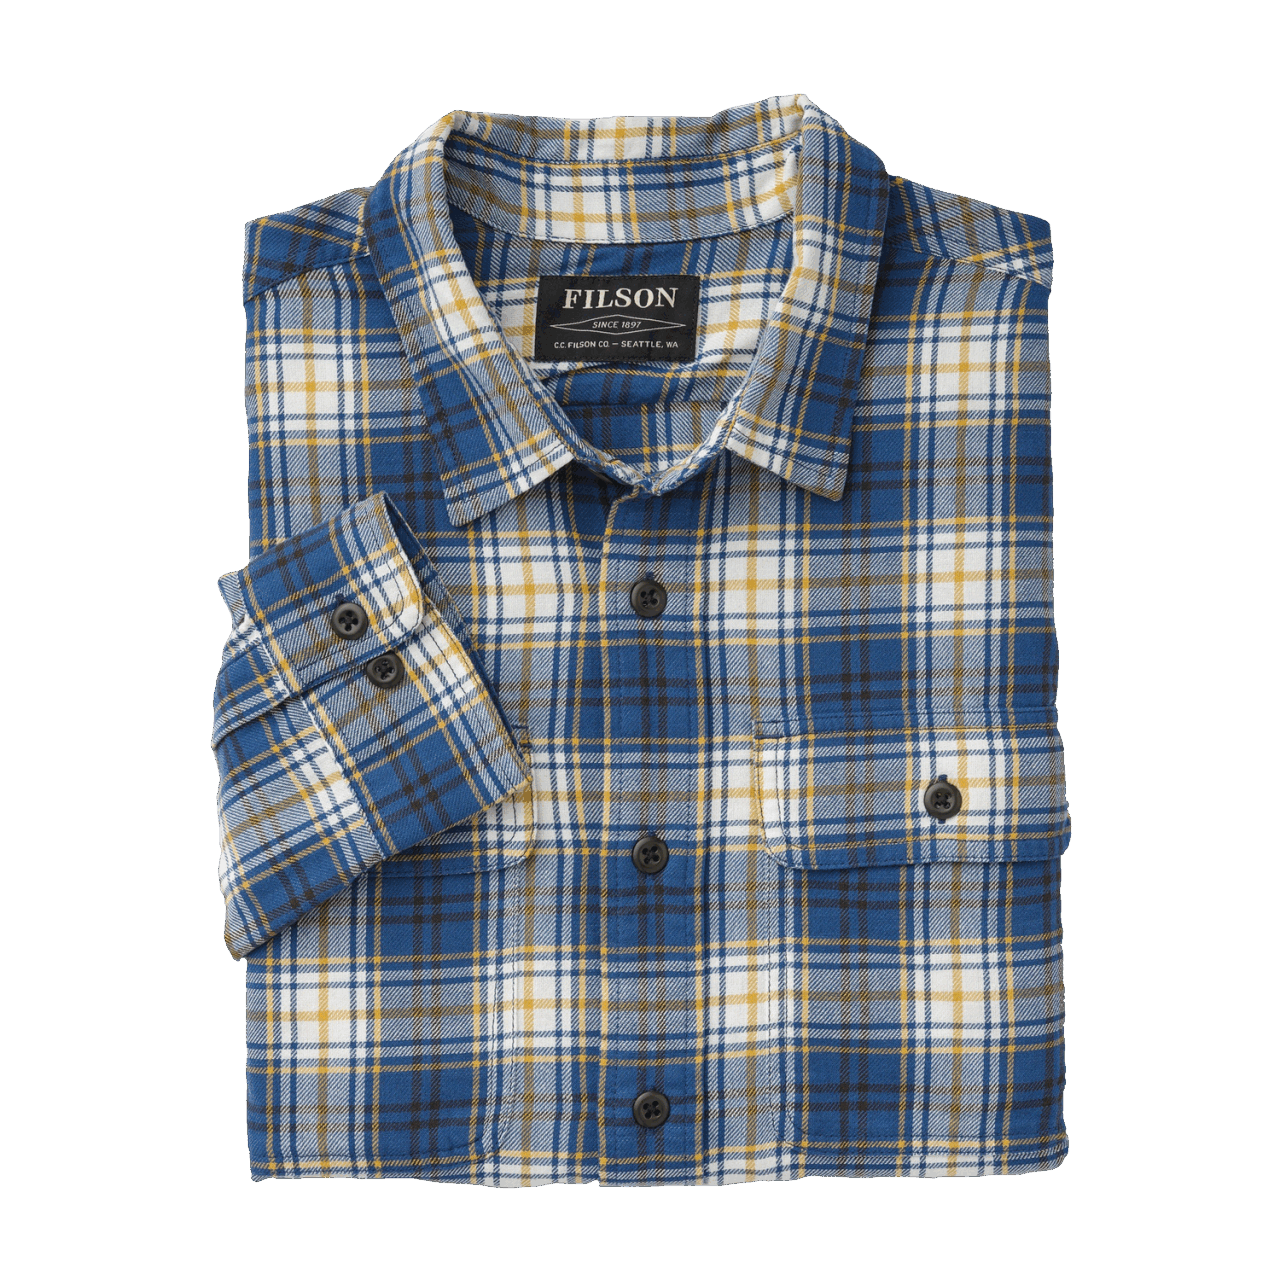 Filson Scout Shirt blue-gold-white